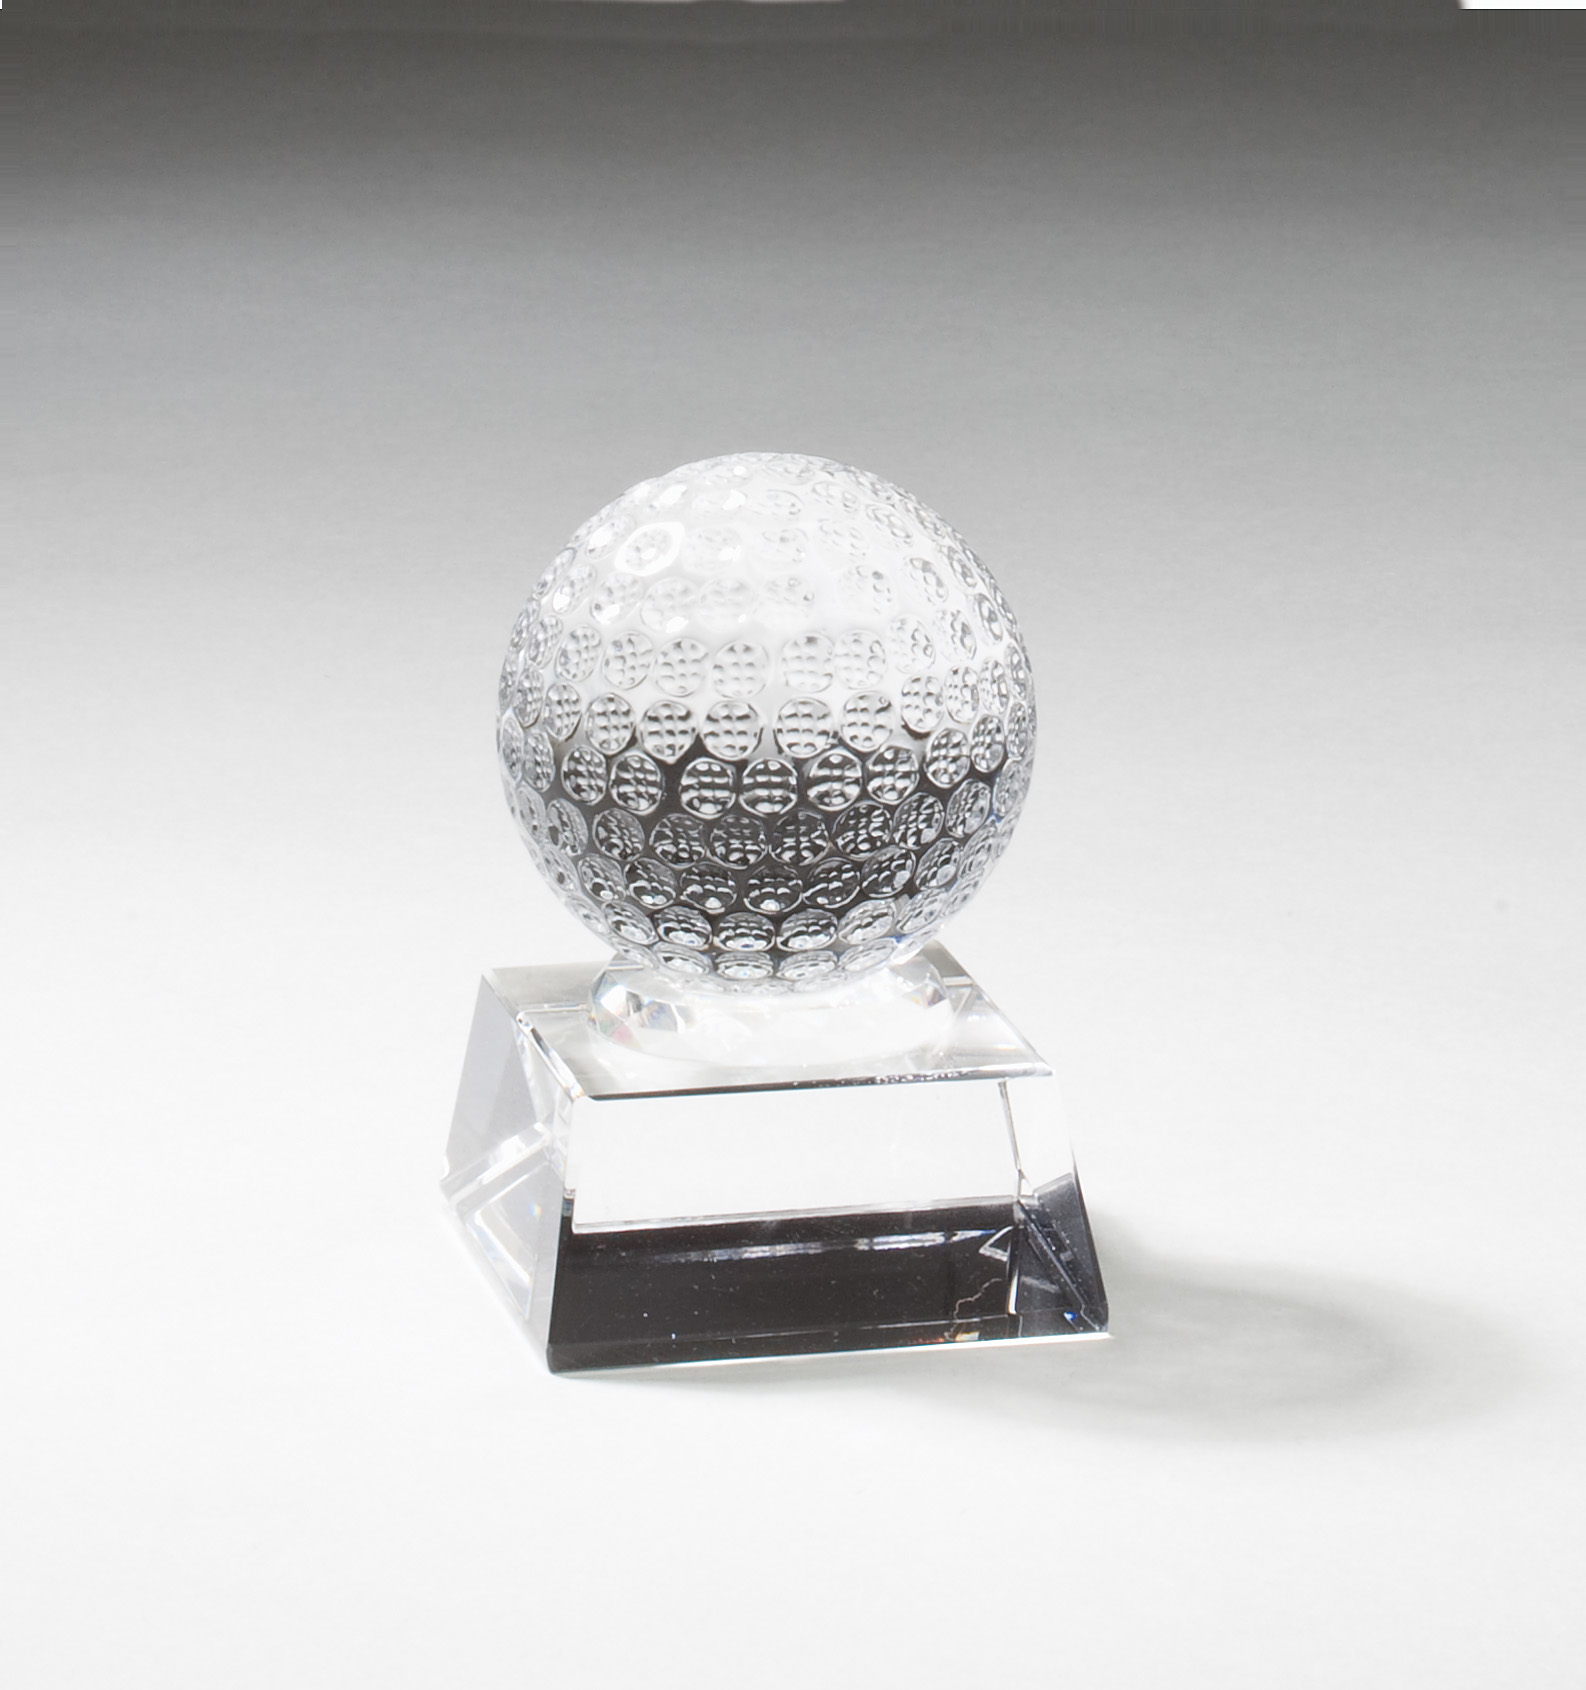 "Small Crystal Golf Ball   CRY267 - 3.5"" tall x 2.5"" wide   Price = $34"